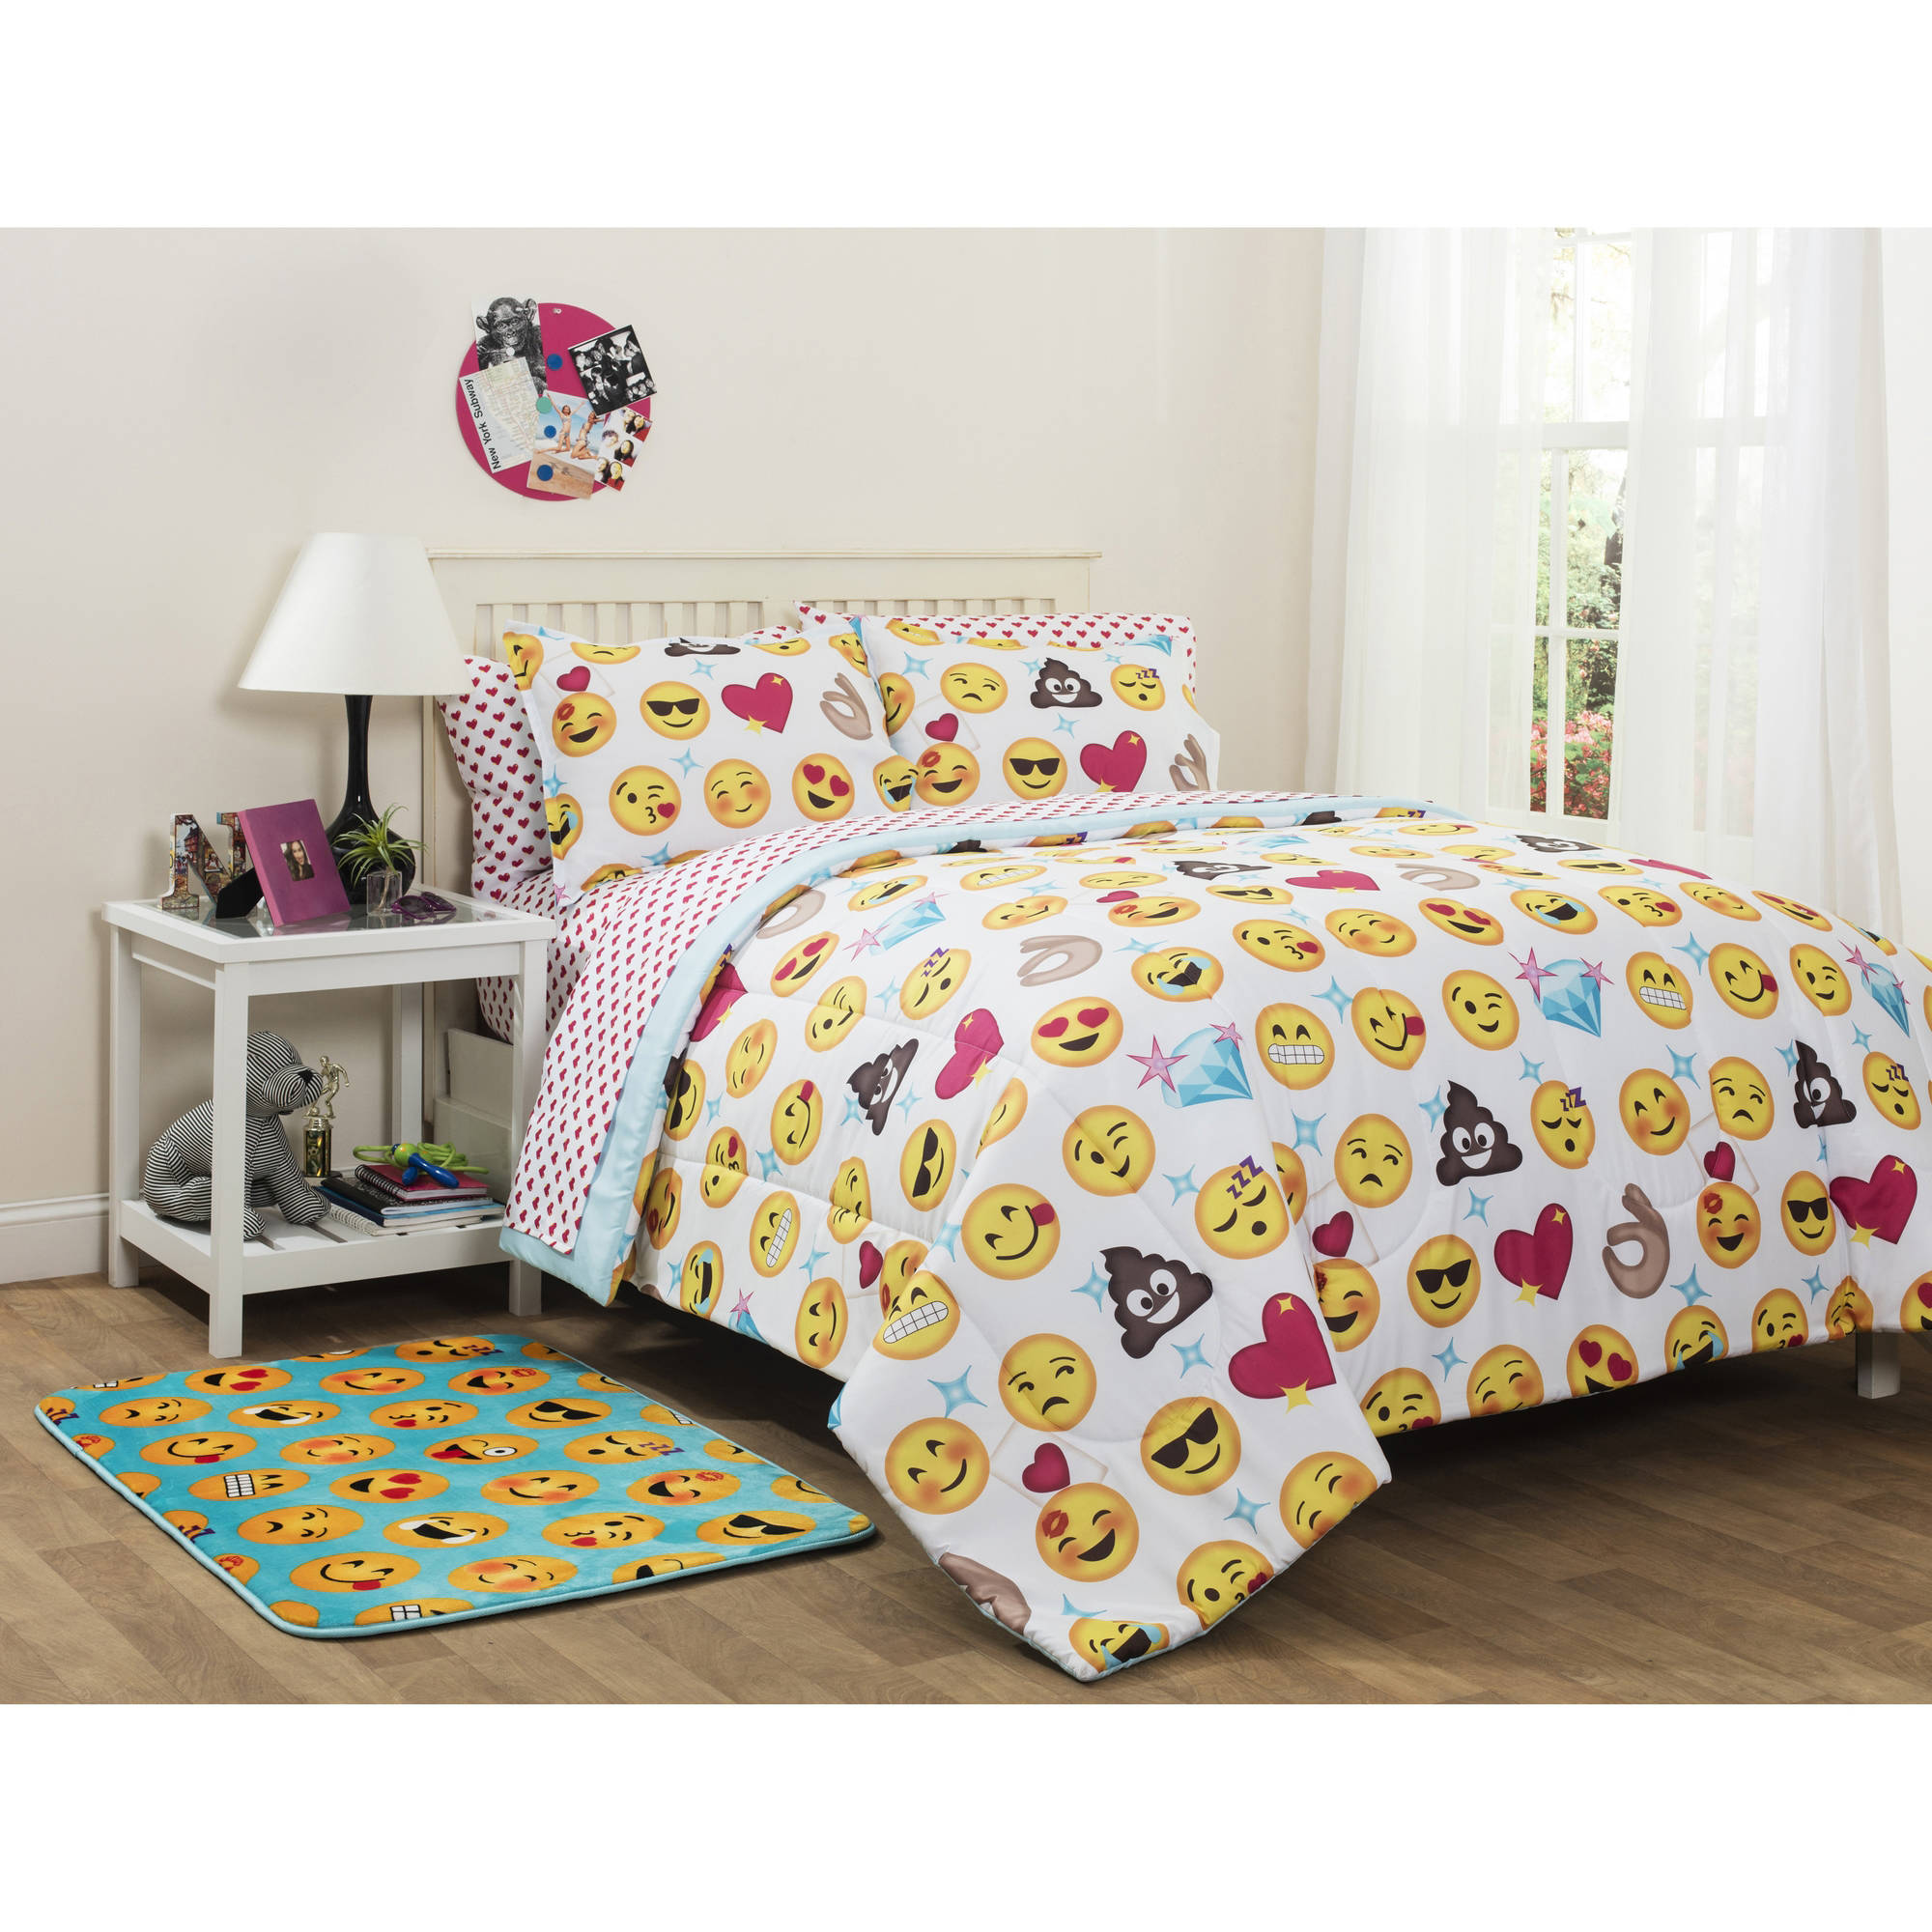 Great Walmart Bed Plans Free